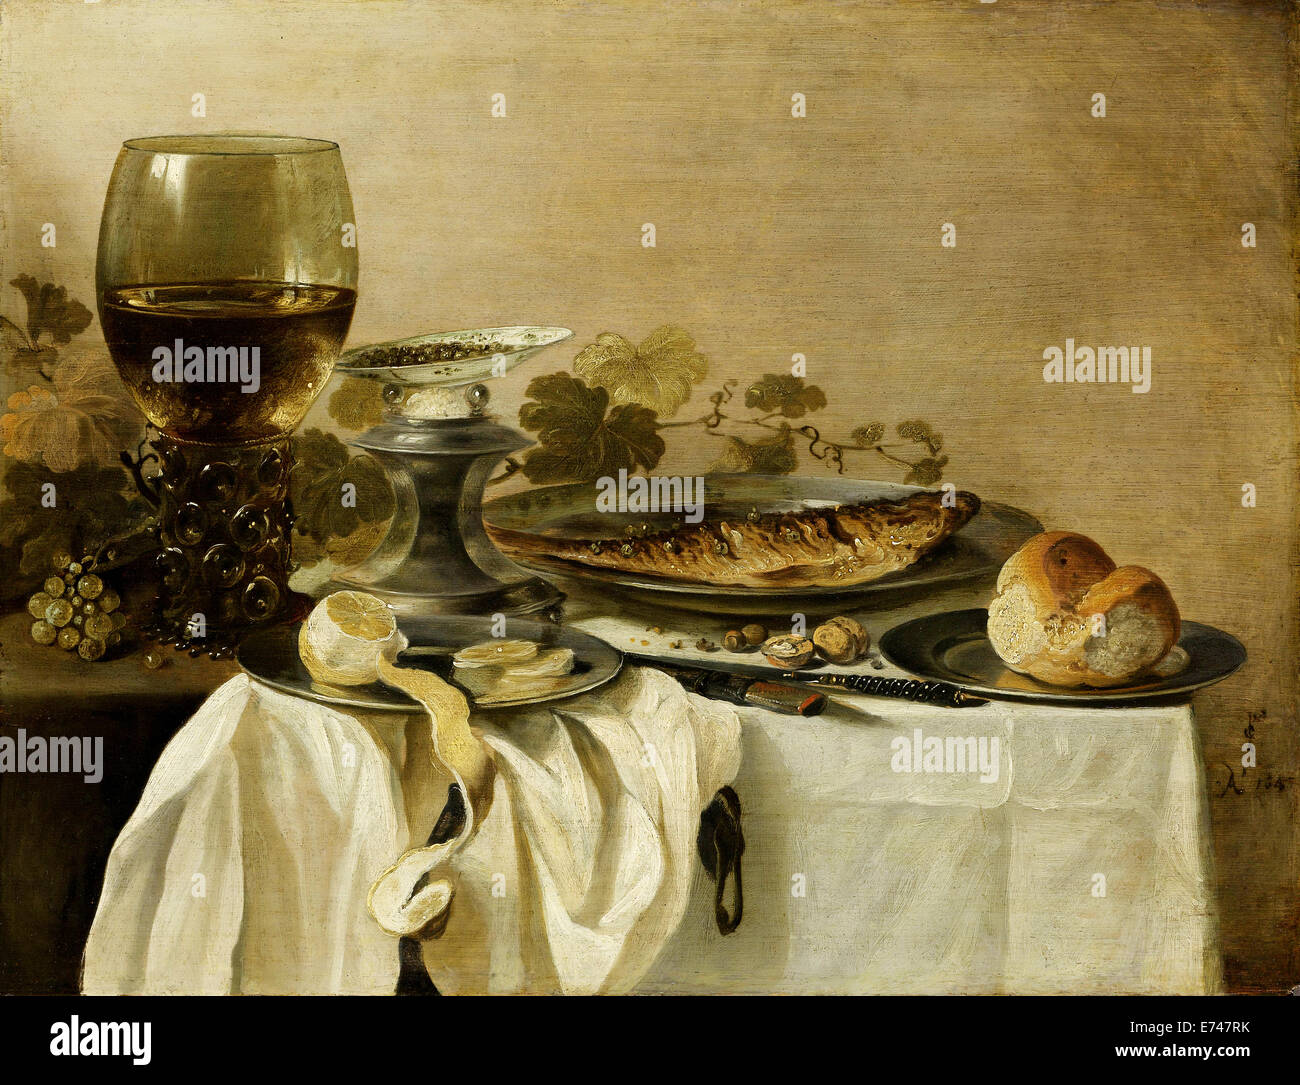 Still life with fish - by Pieter Claesz, 1647 - Stock Image